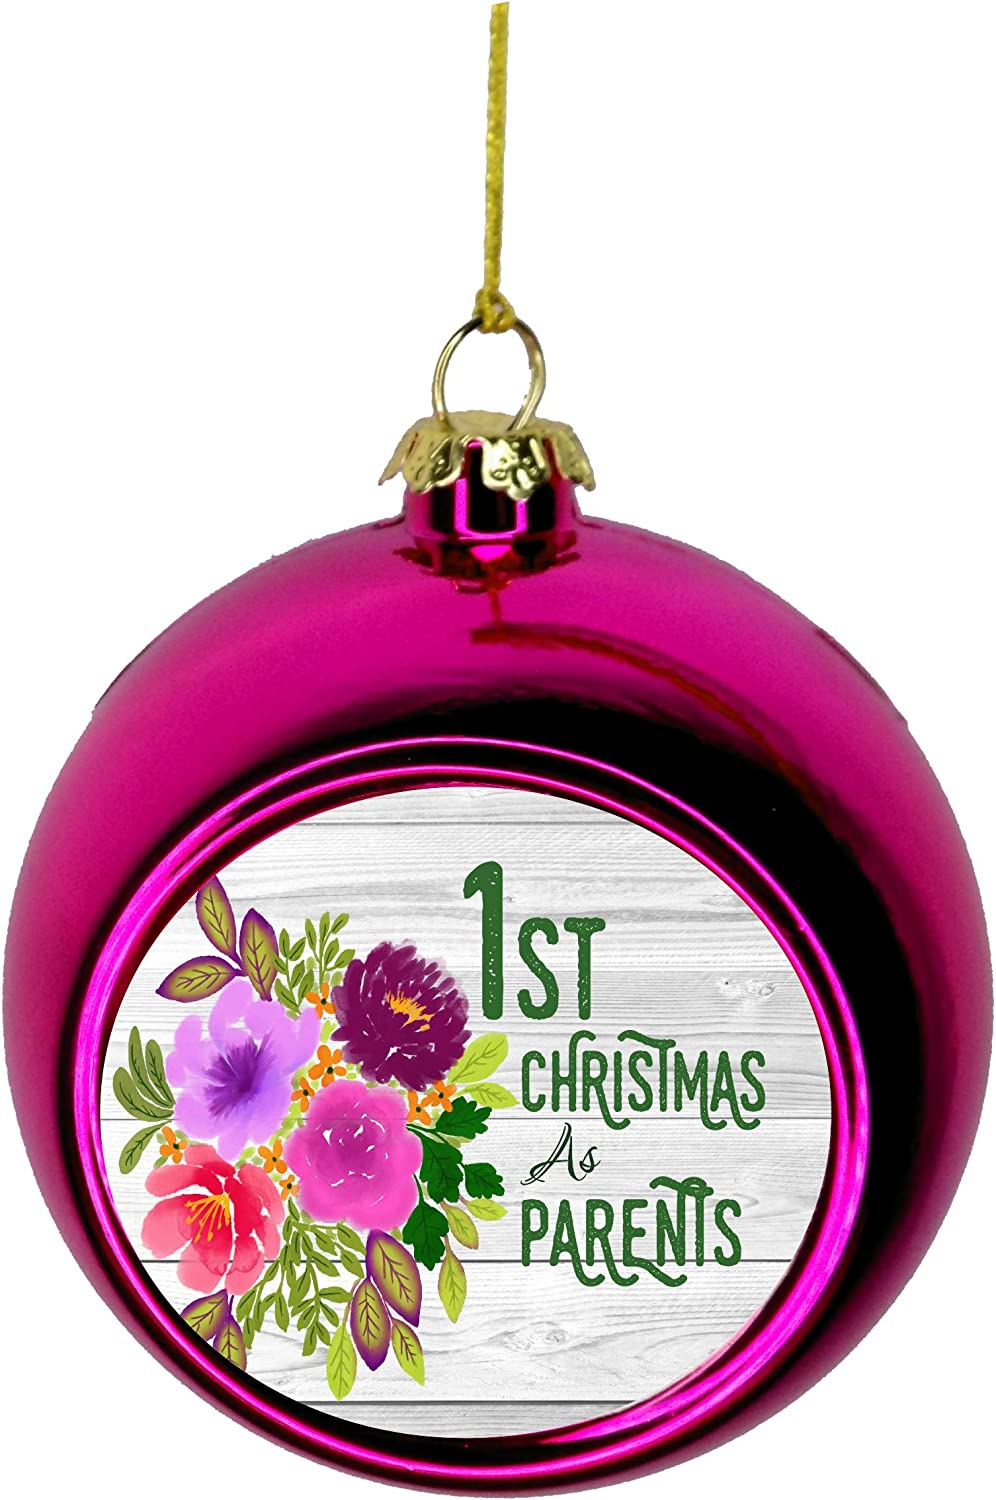 First Louisville-Jefferson County Mall Time Parents Ornaments Ranking integrated 1st place Baby and Orna -